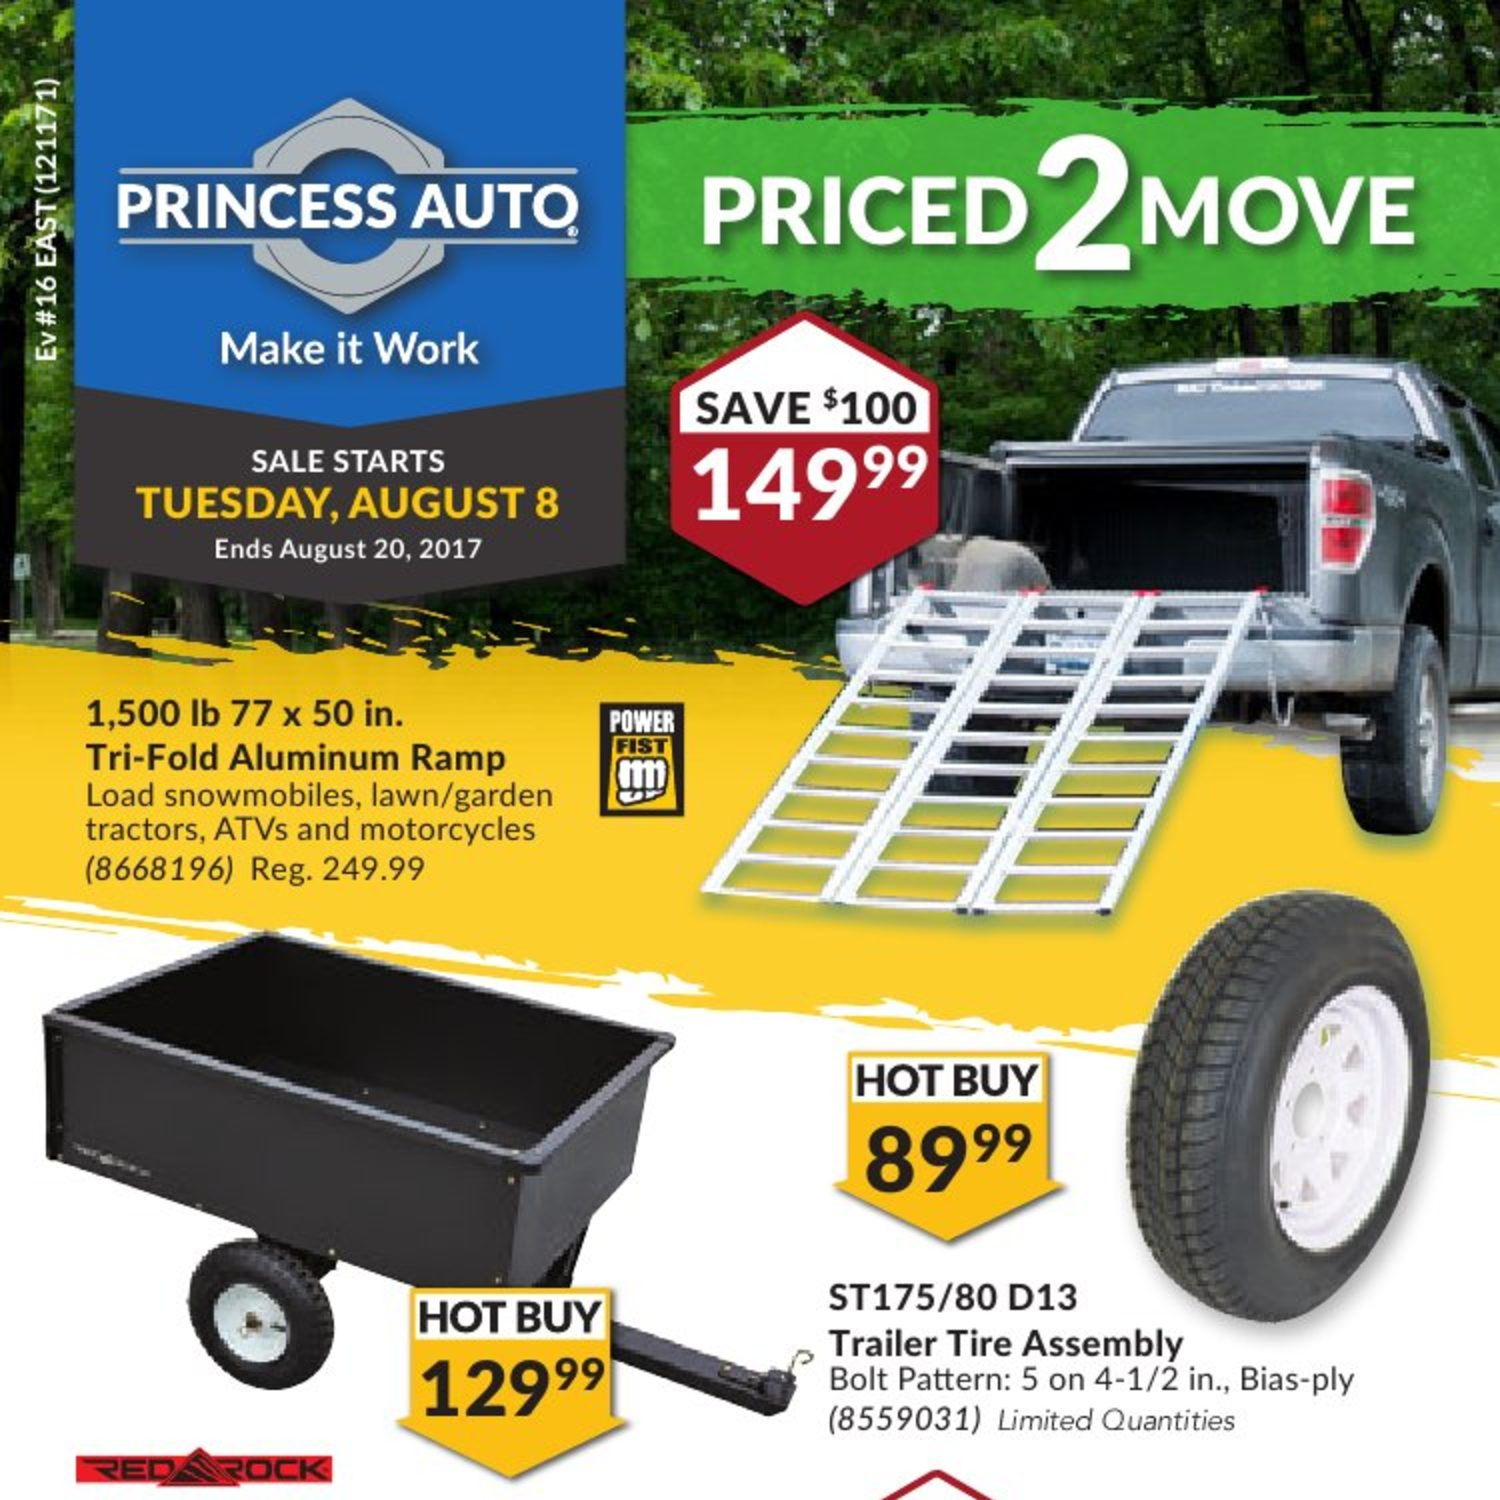 Princess Auto Weekly Flyer Priced 2 Move Aug 8 – 20